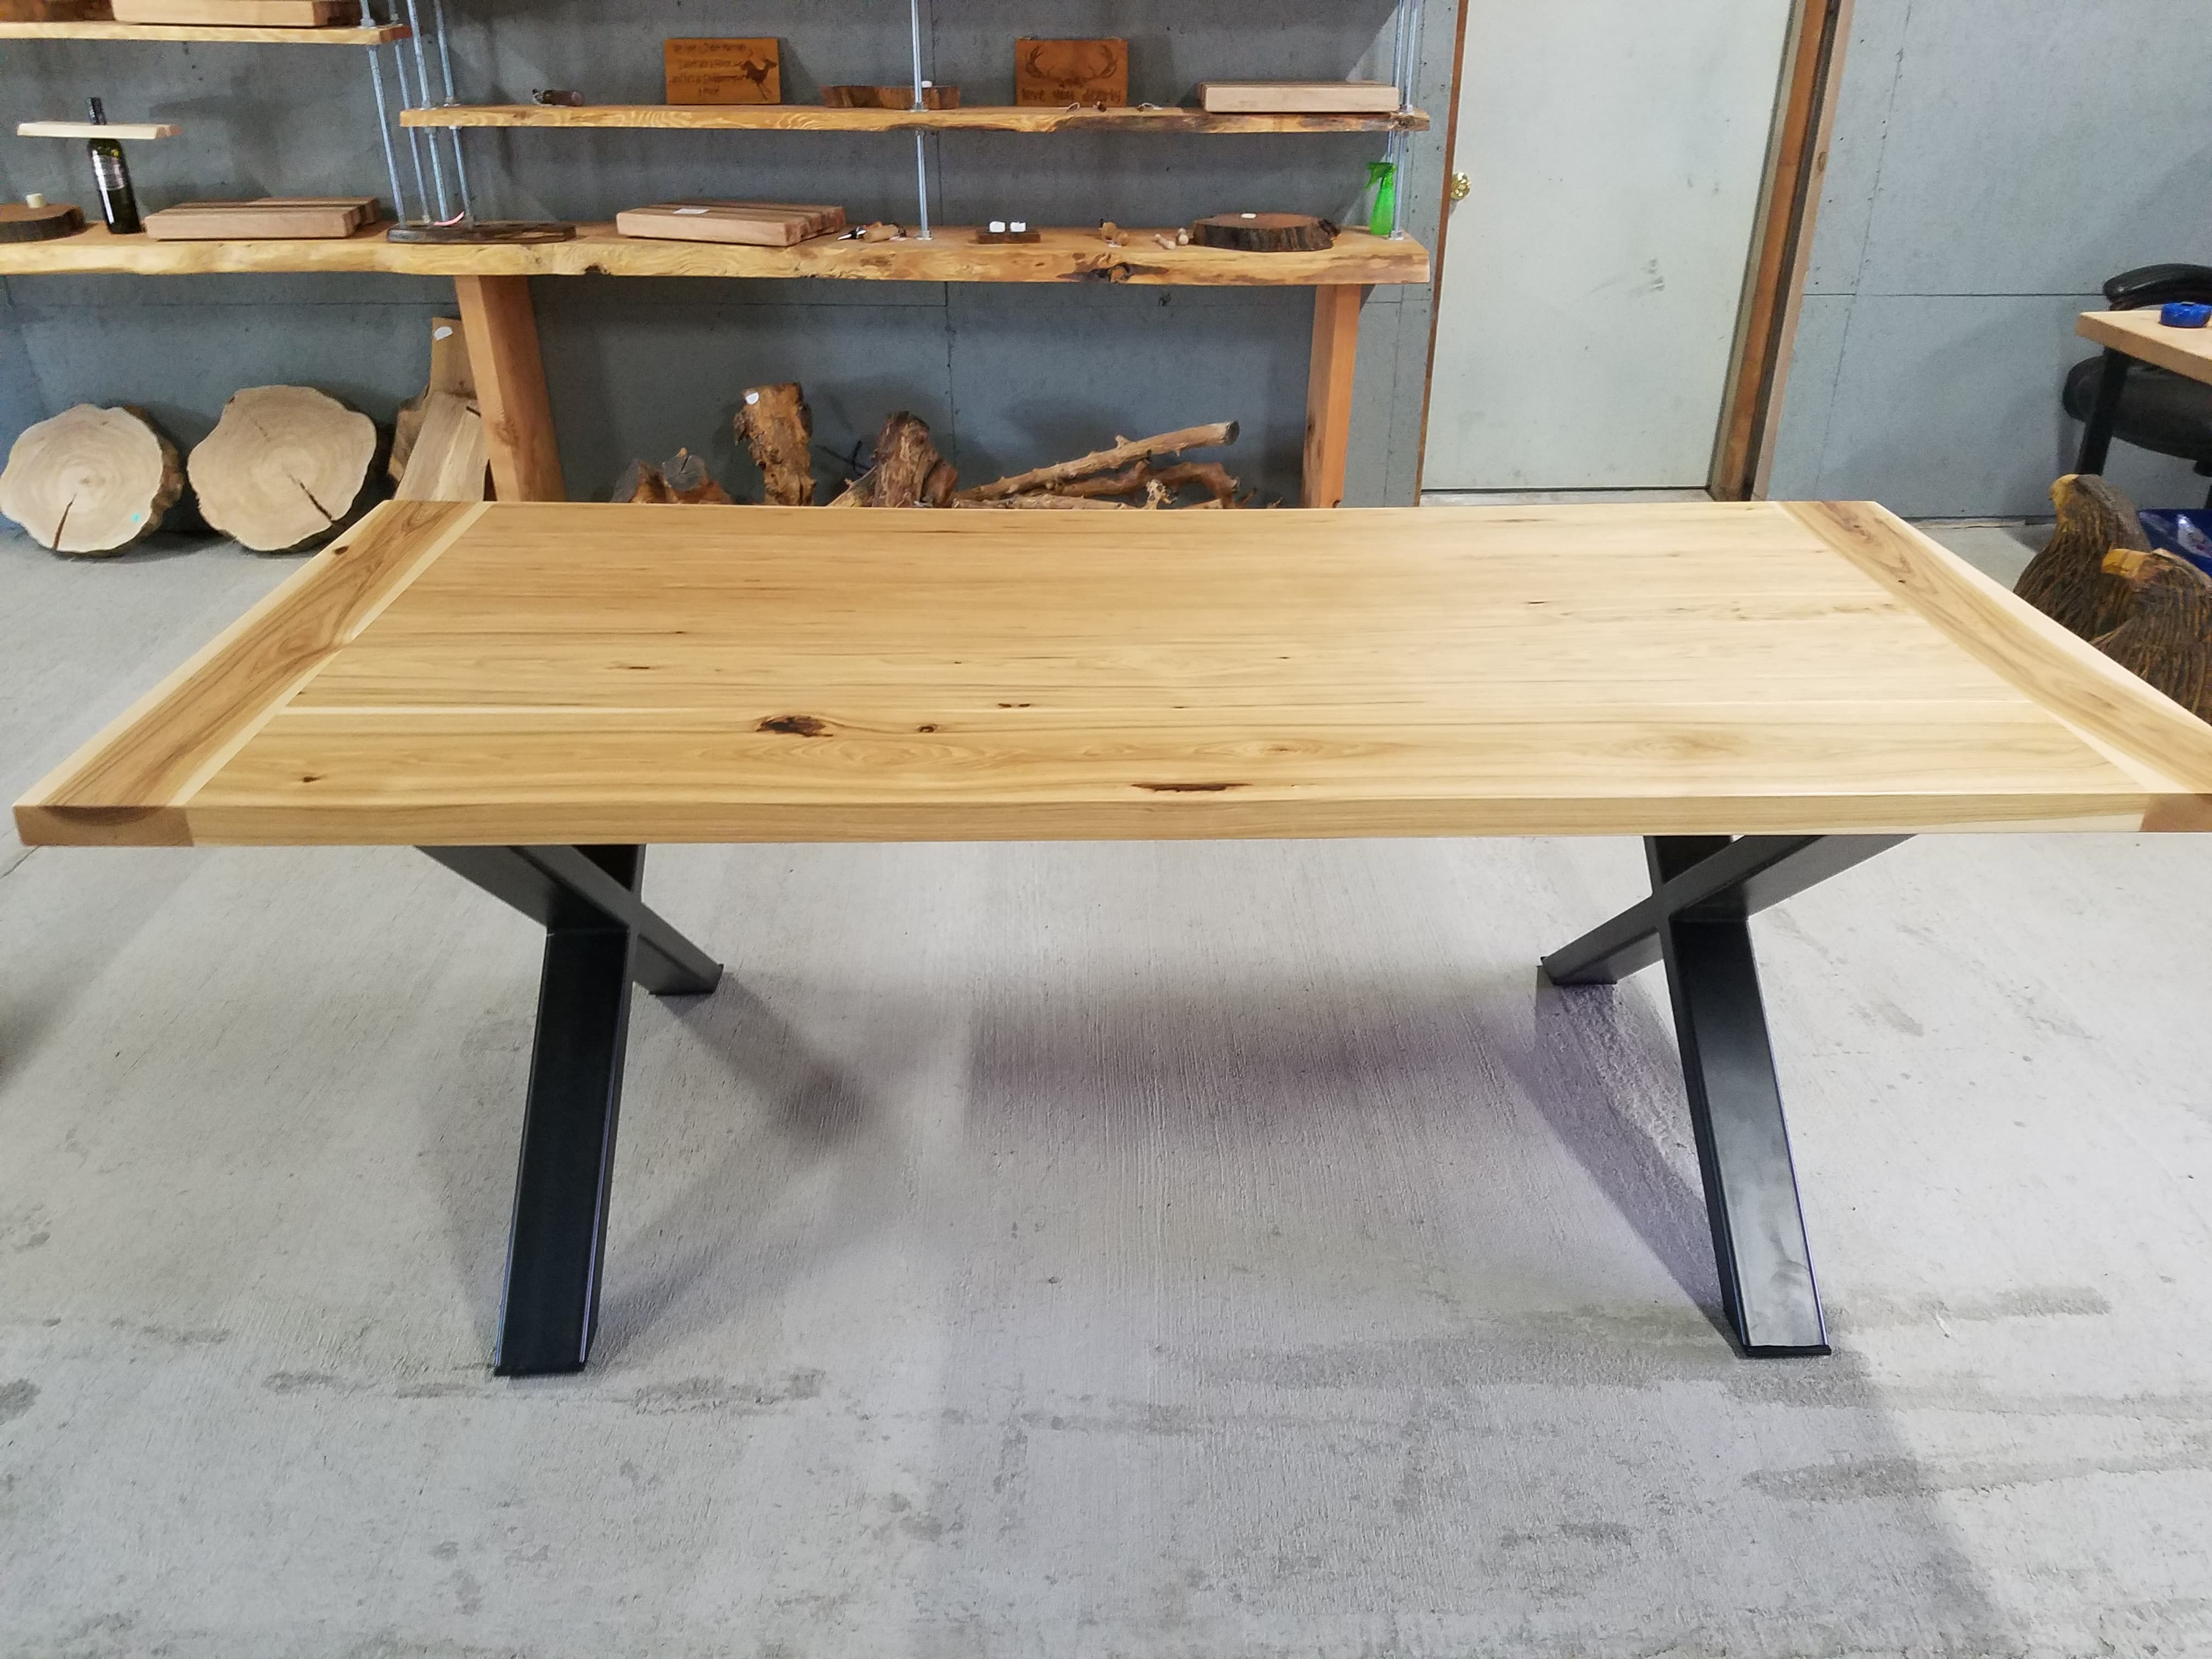 Hickory Farmhouse Style Dining Room Table - Shipping Not Included